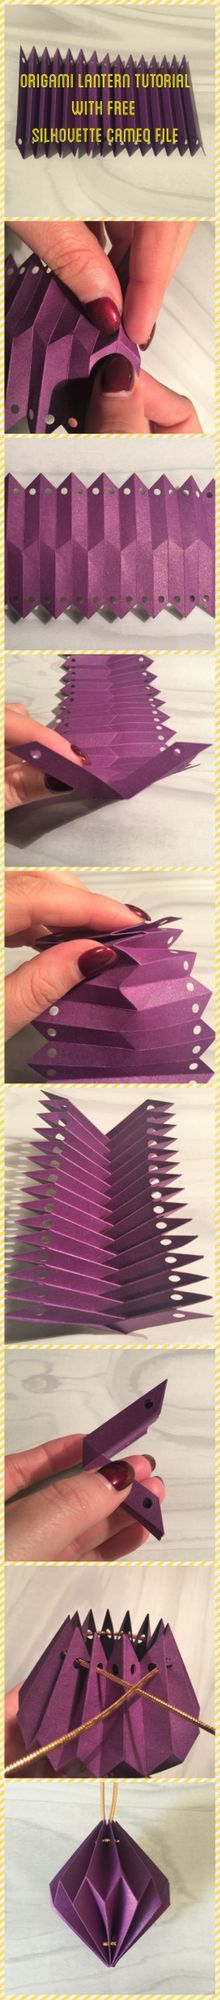 Origami lantern tutorial with free cut file from Silhouette Uk blog http://silhouetteuk.blogspot.co.uk/2016/04/origami-lanterns-with-free-cut-file.html?m=1